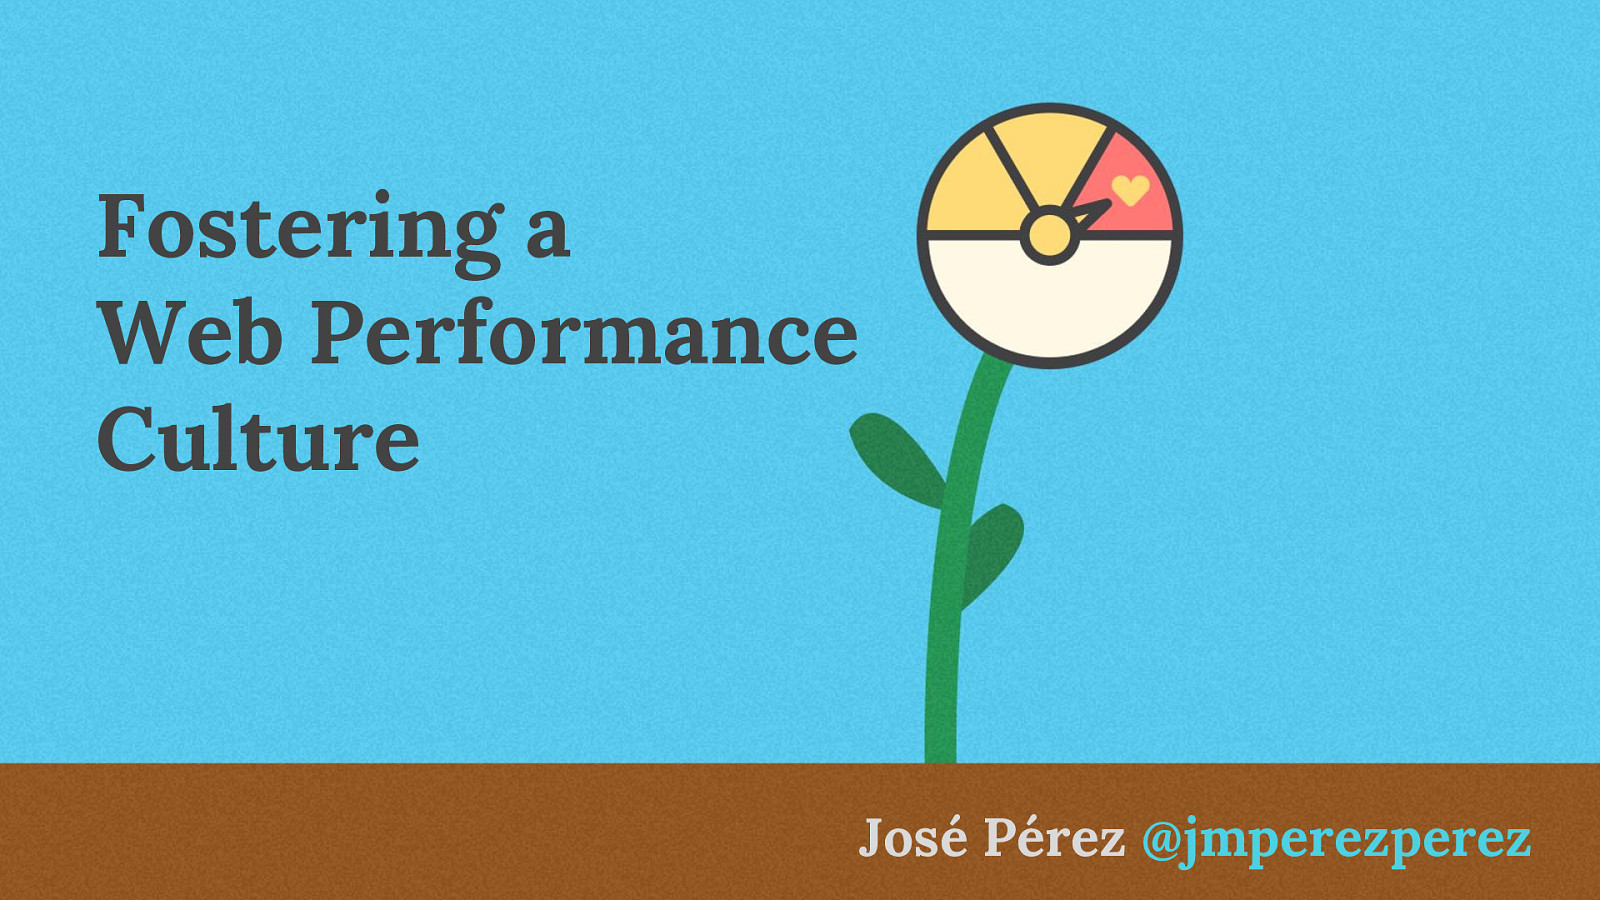 Fostering a Web Performance Culture